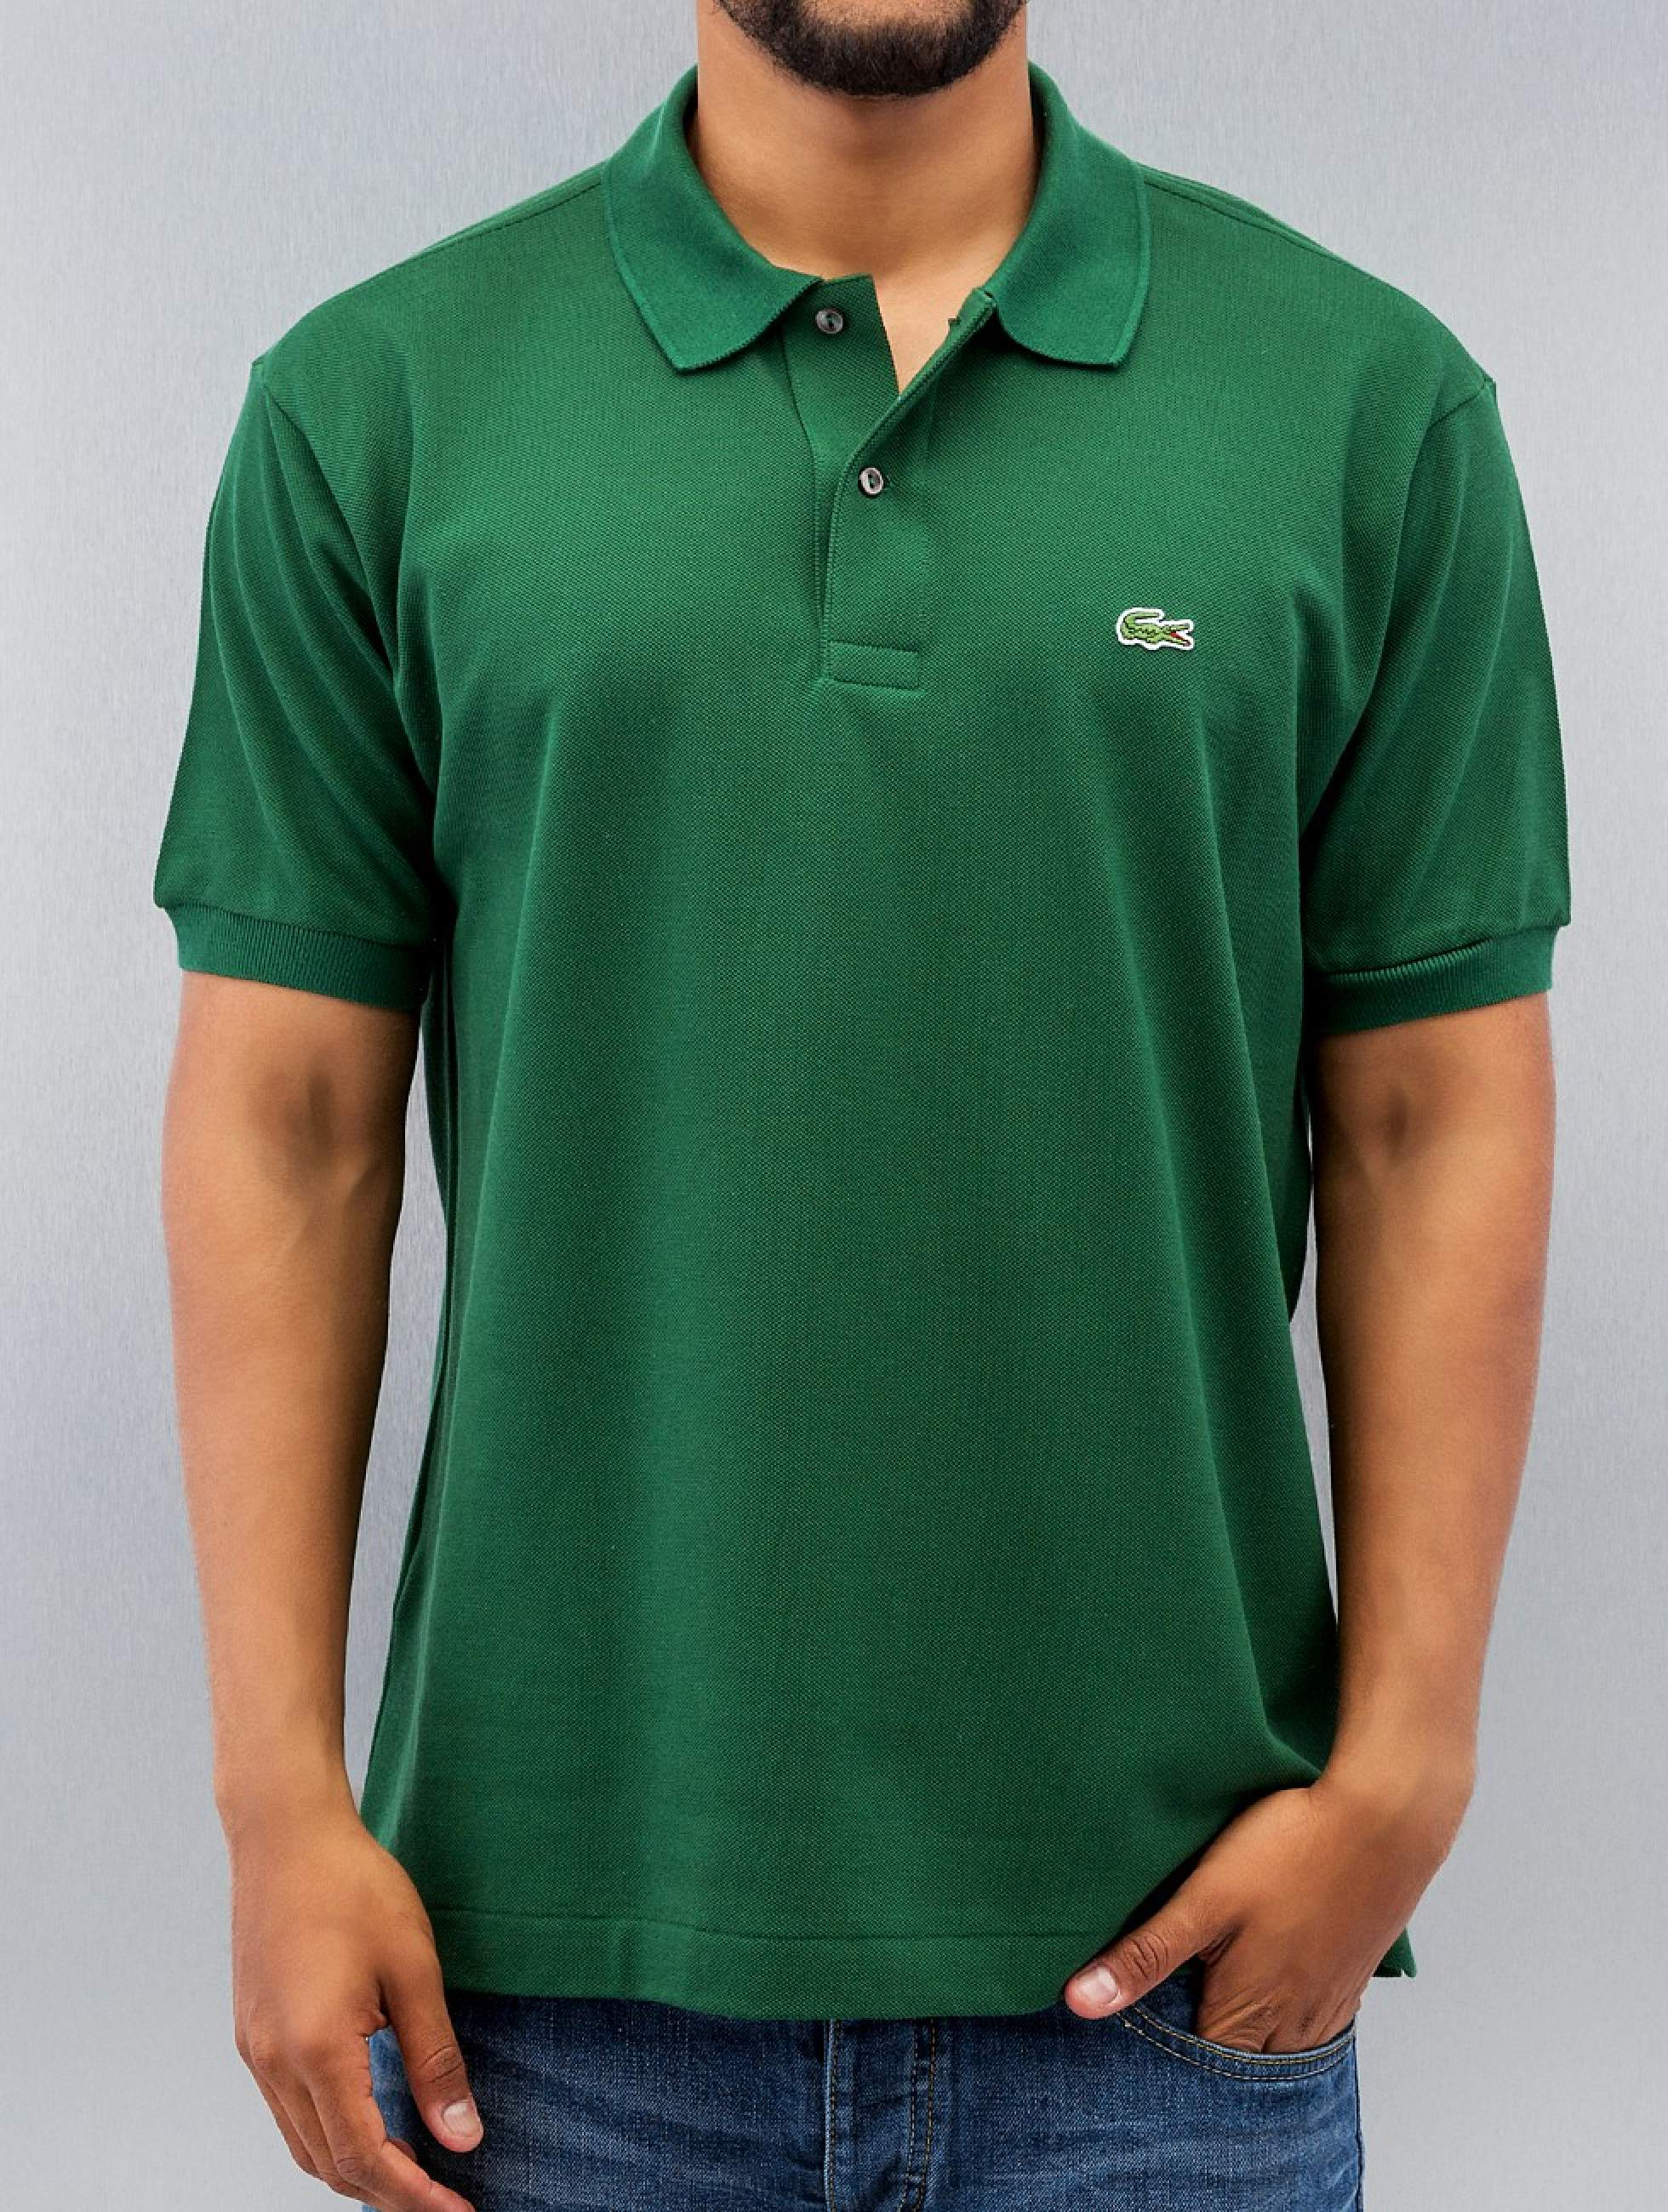 Lacoste Basic Polo Shirt Green 6bgyf7